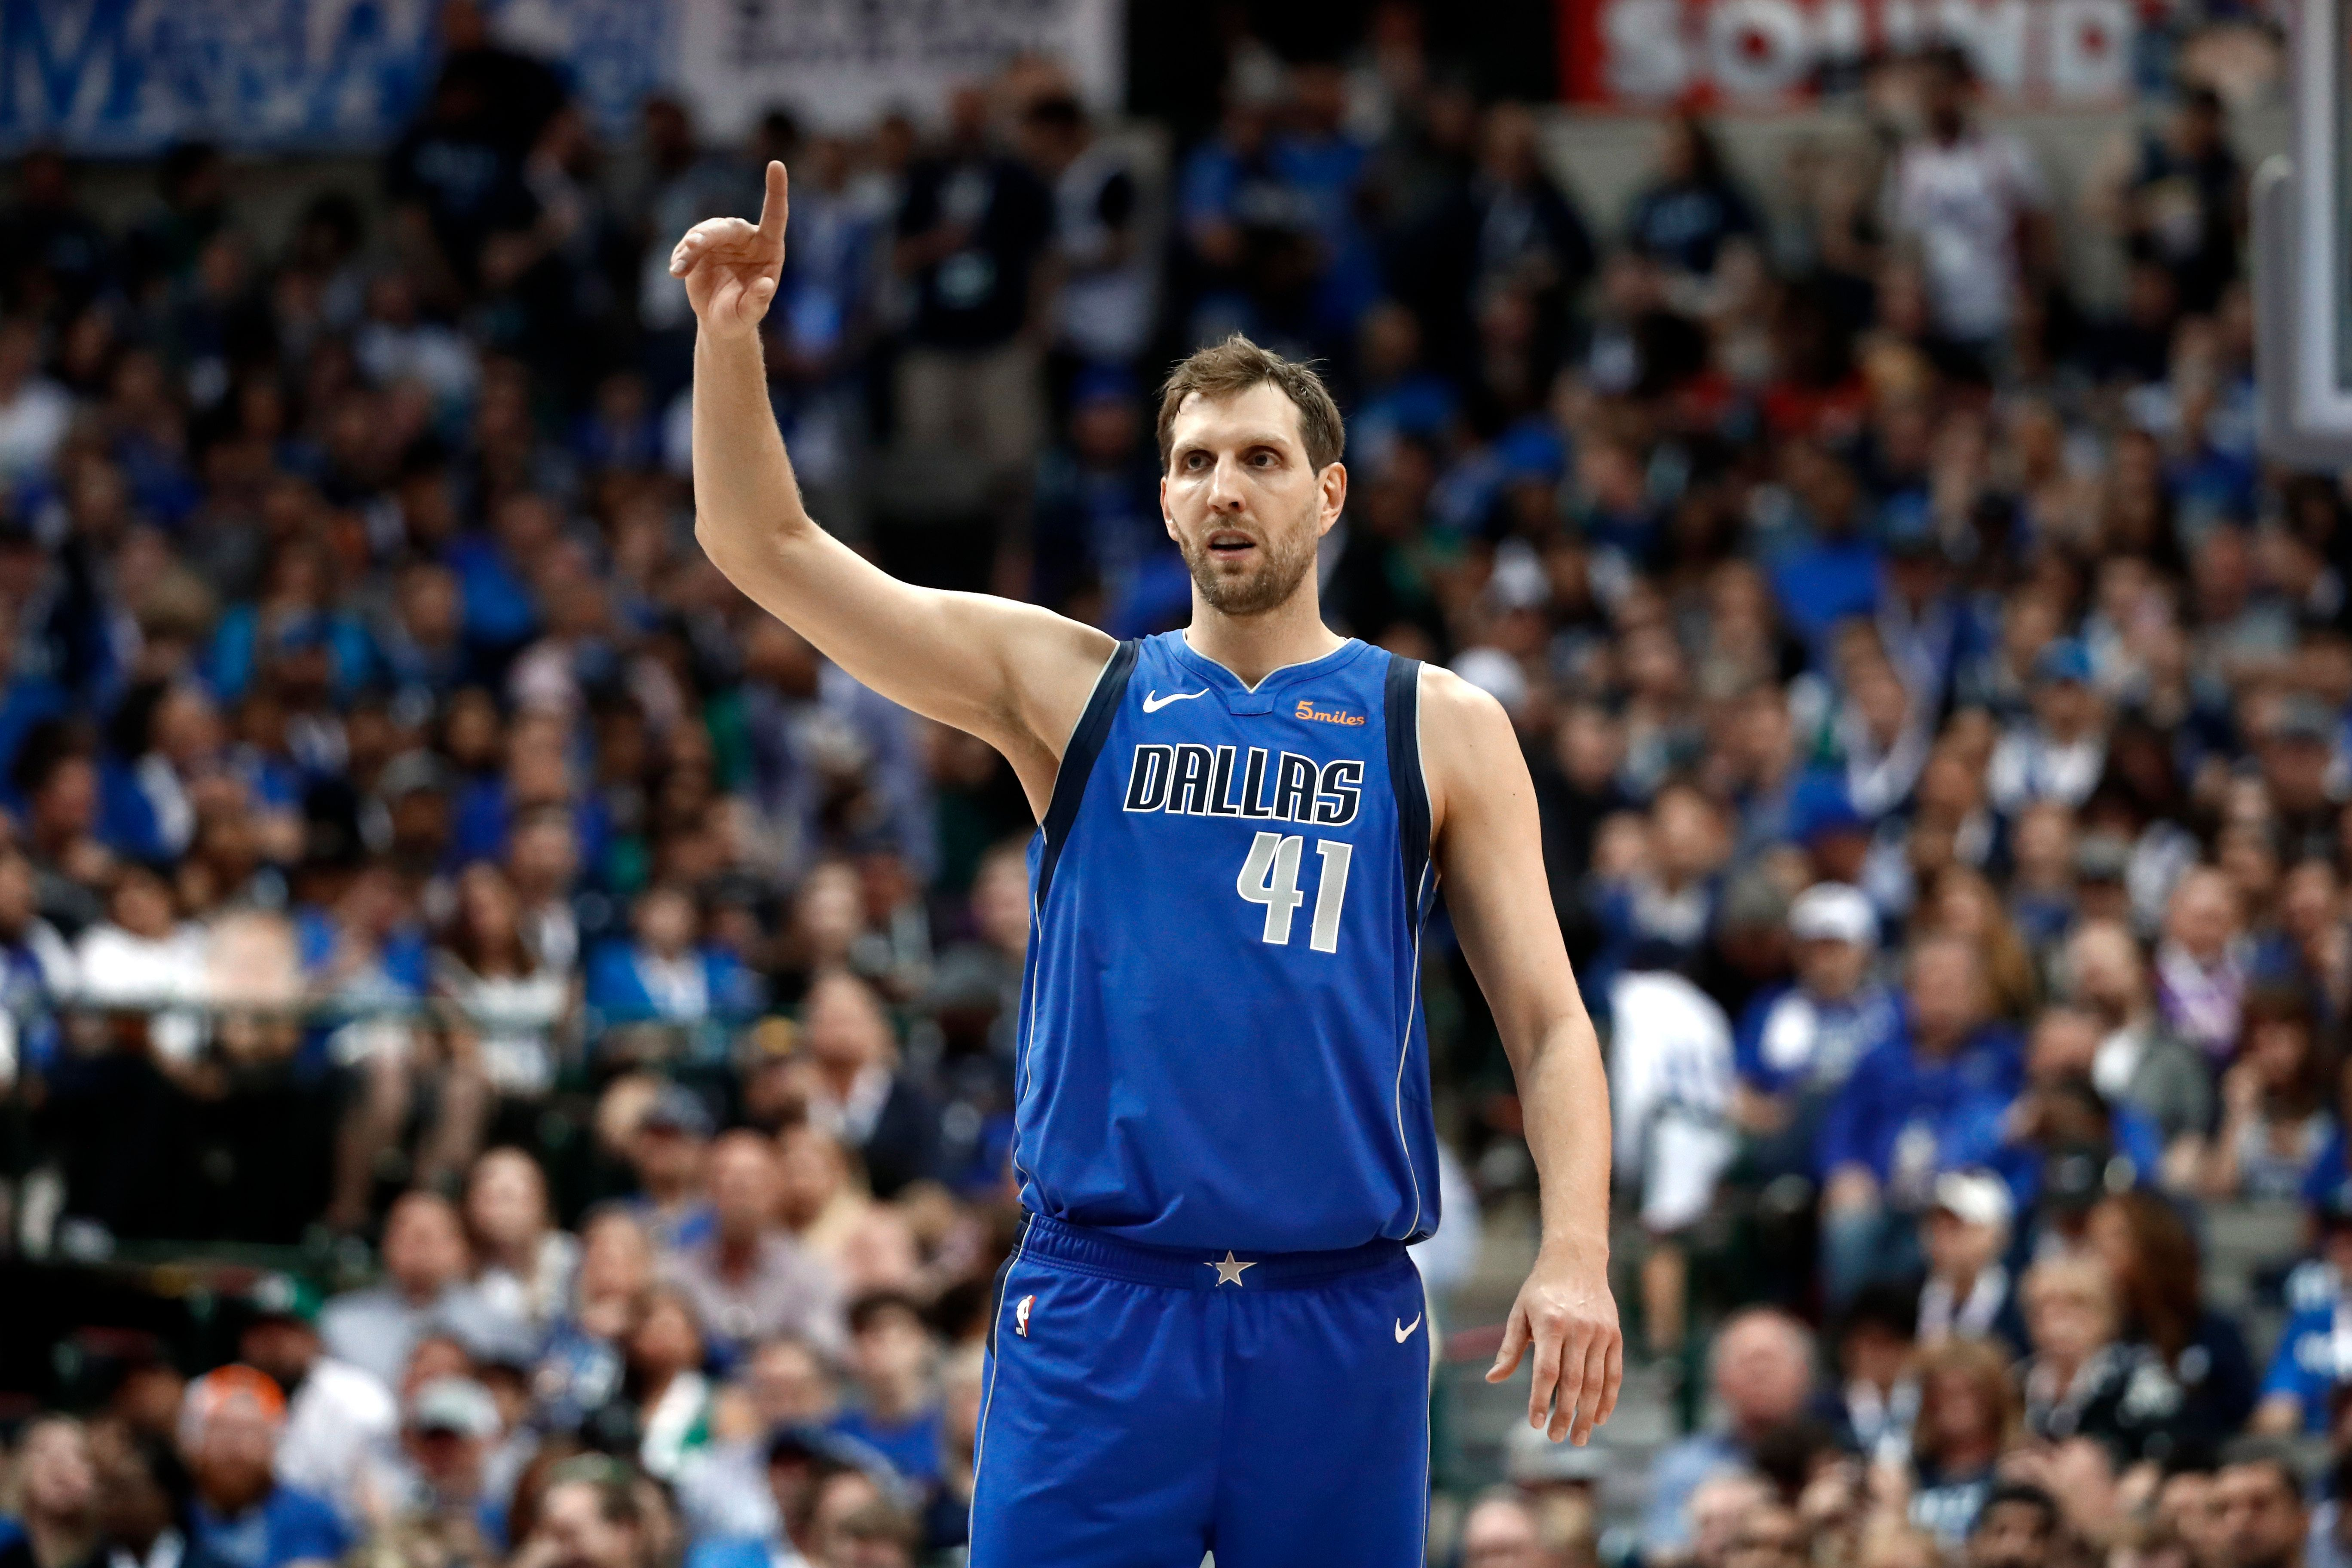 Dallas Mavericks' Dirk Nowitzki celebrates a teammate's basket during the second half of an NBA basketball game against the Phoenix Suns in Dallas, Tuesday, April 9, 2019. (AP Photo/Tony Gutierrez)